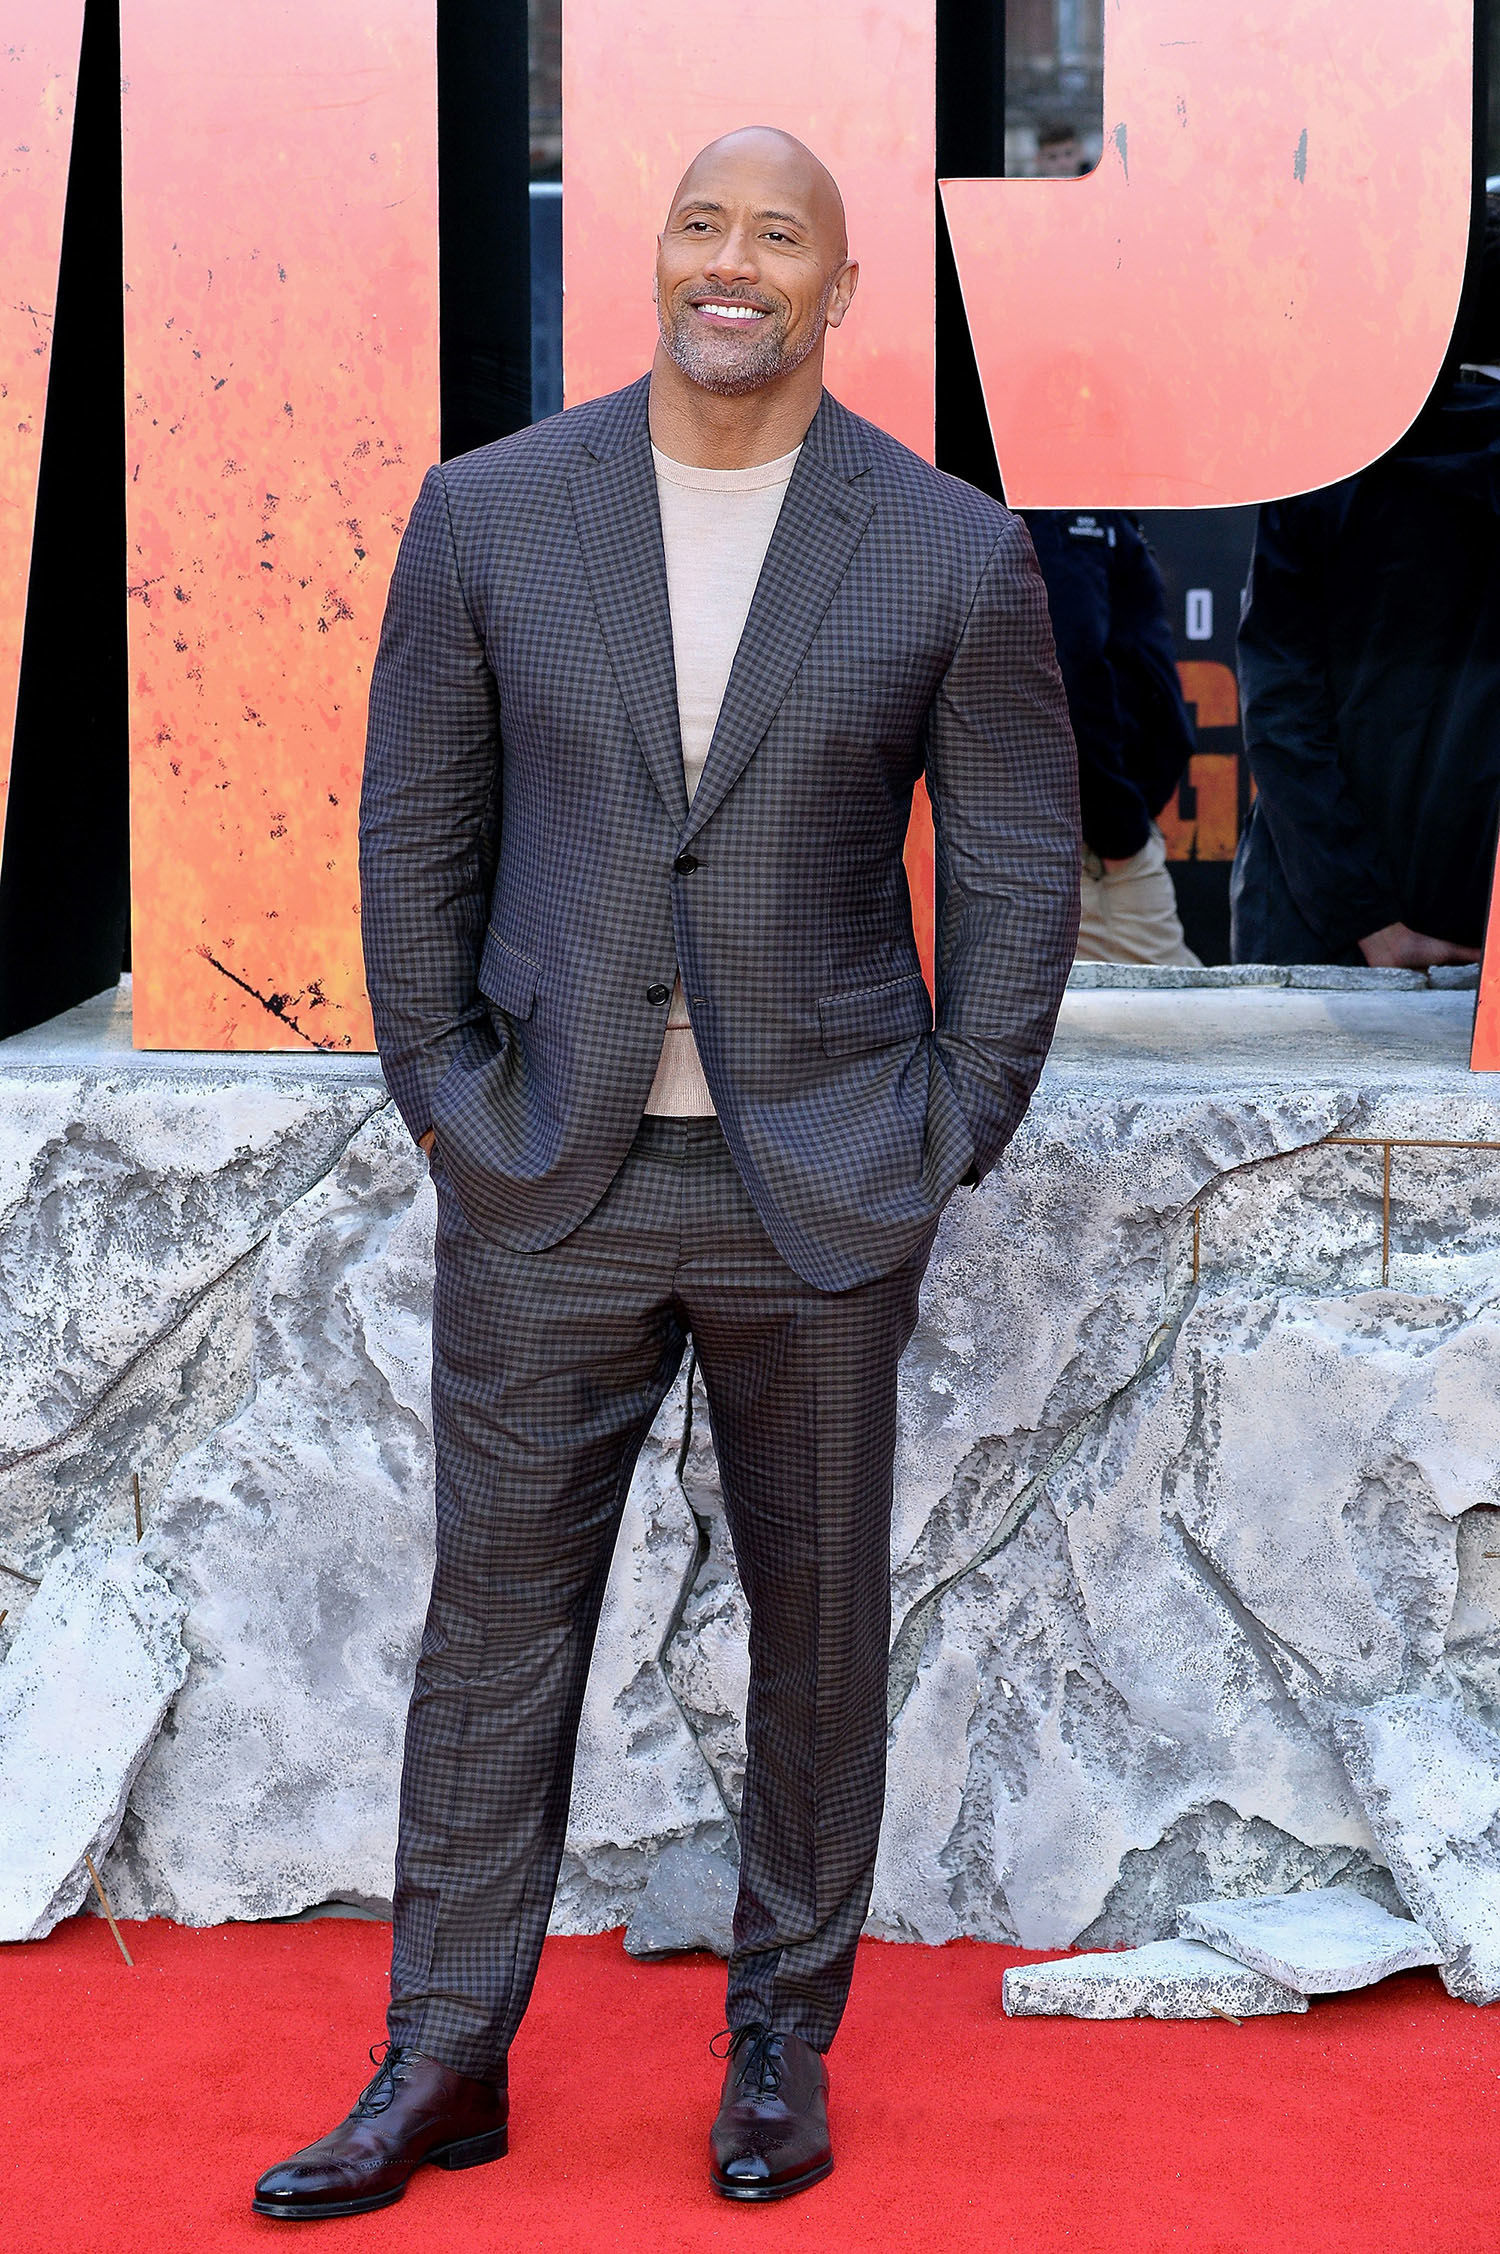 Dwayne Johnson's Suit Looks That Define His Amazing Body Image and High Fashion Quotient! 2